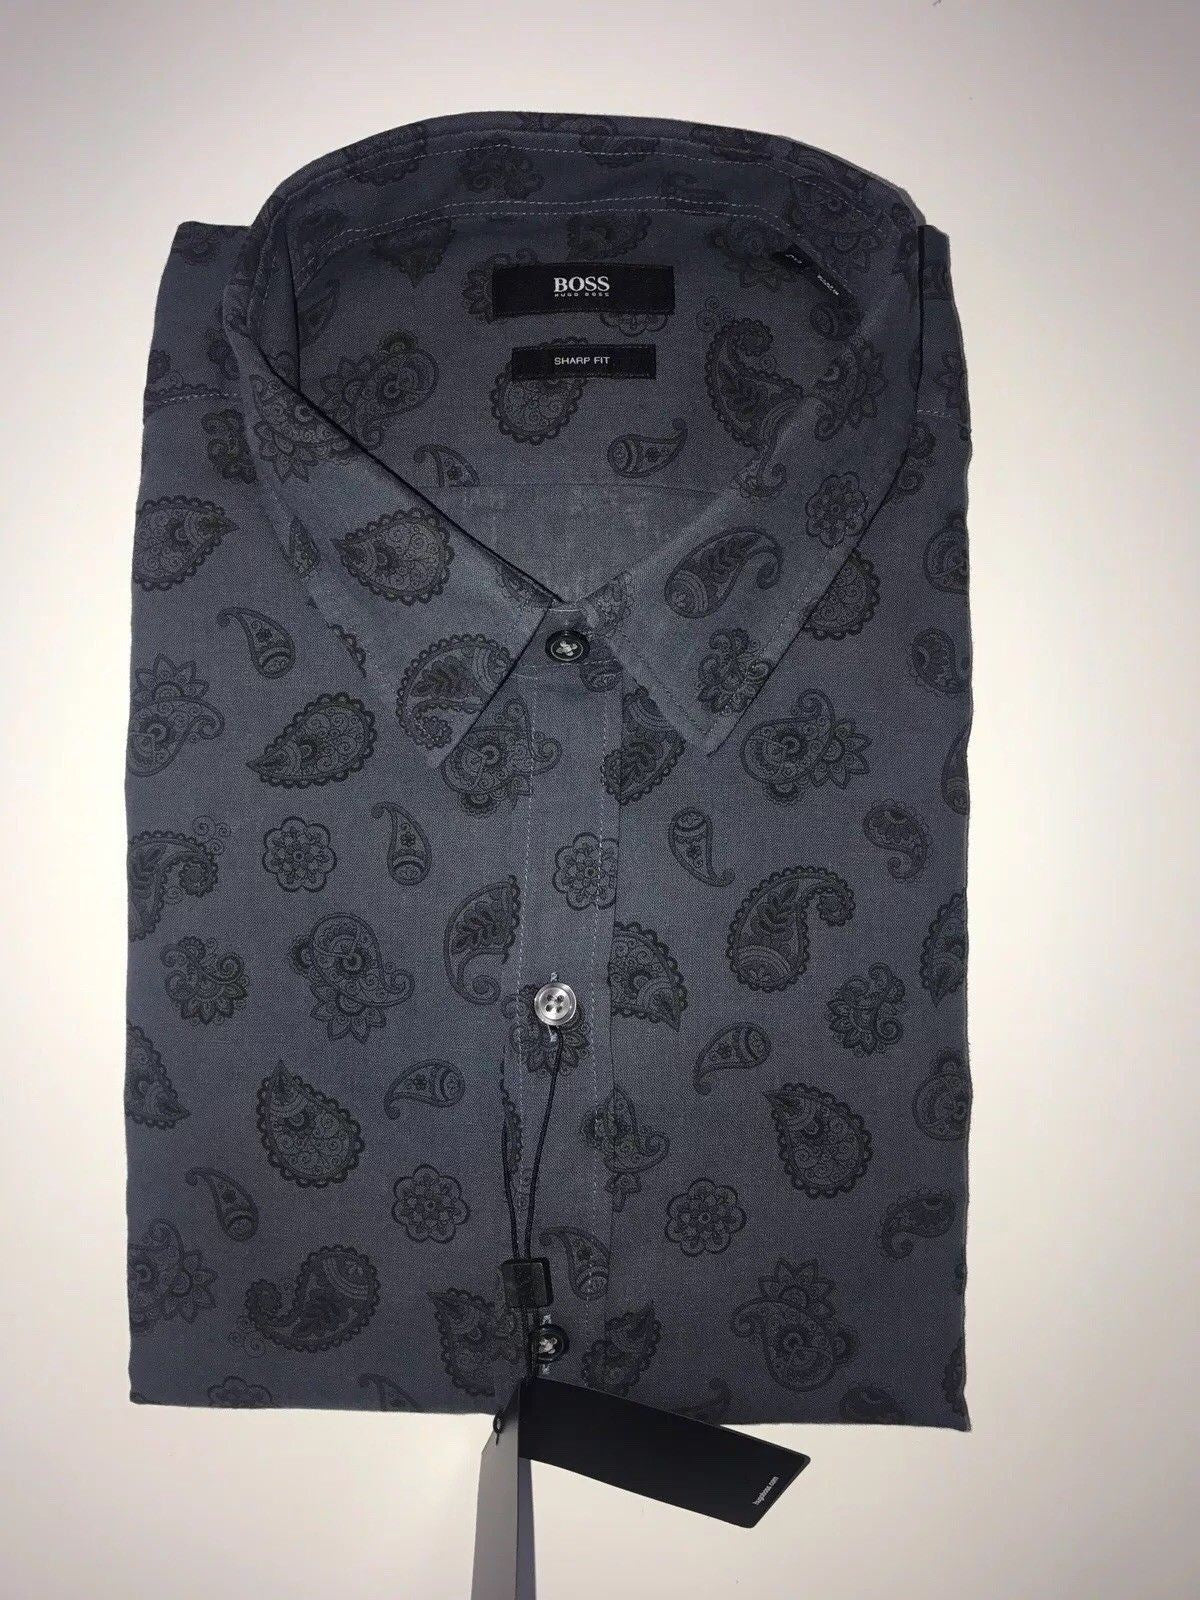 NWT $175 BOSS Hugo Boss Robbie Mens Sharp Fit Linen Cotton Dress Shirt  Size 2XL